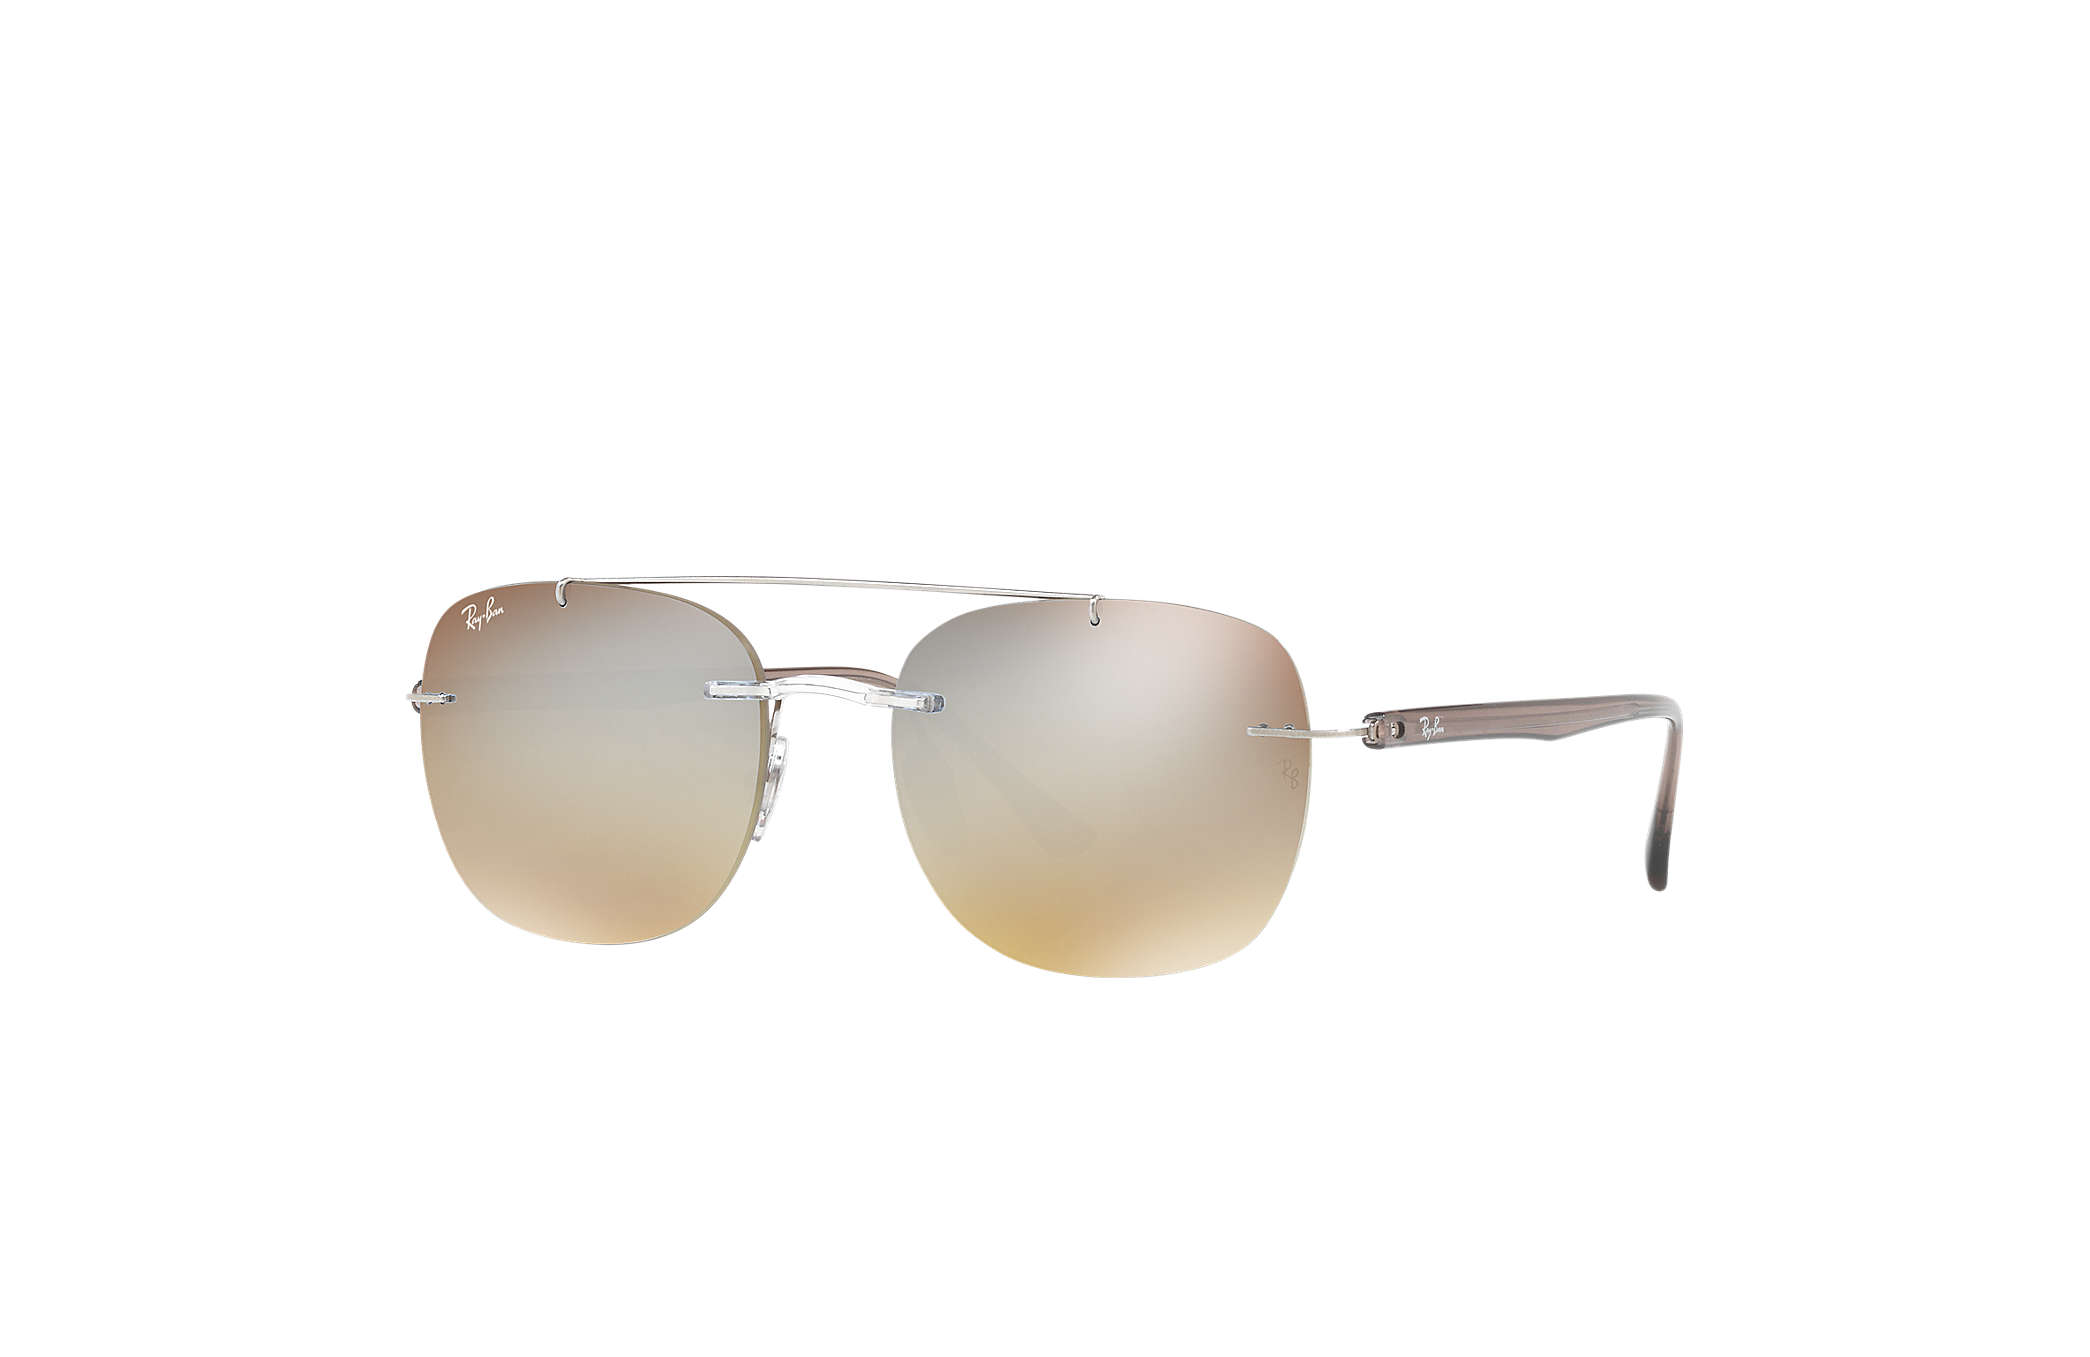 b614275f4b2 Ray-Ban RB4280 Transparent - Liteforce - Brown Silver Lenses ...